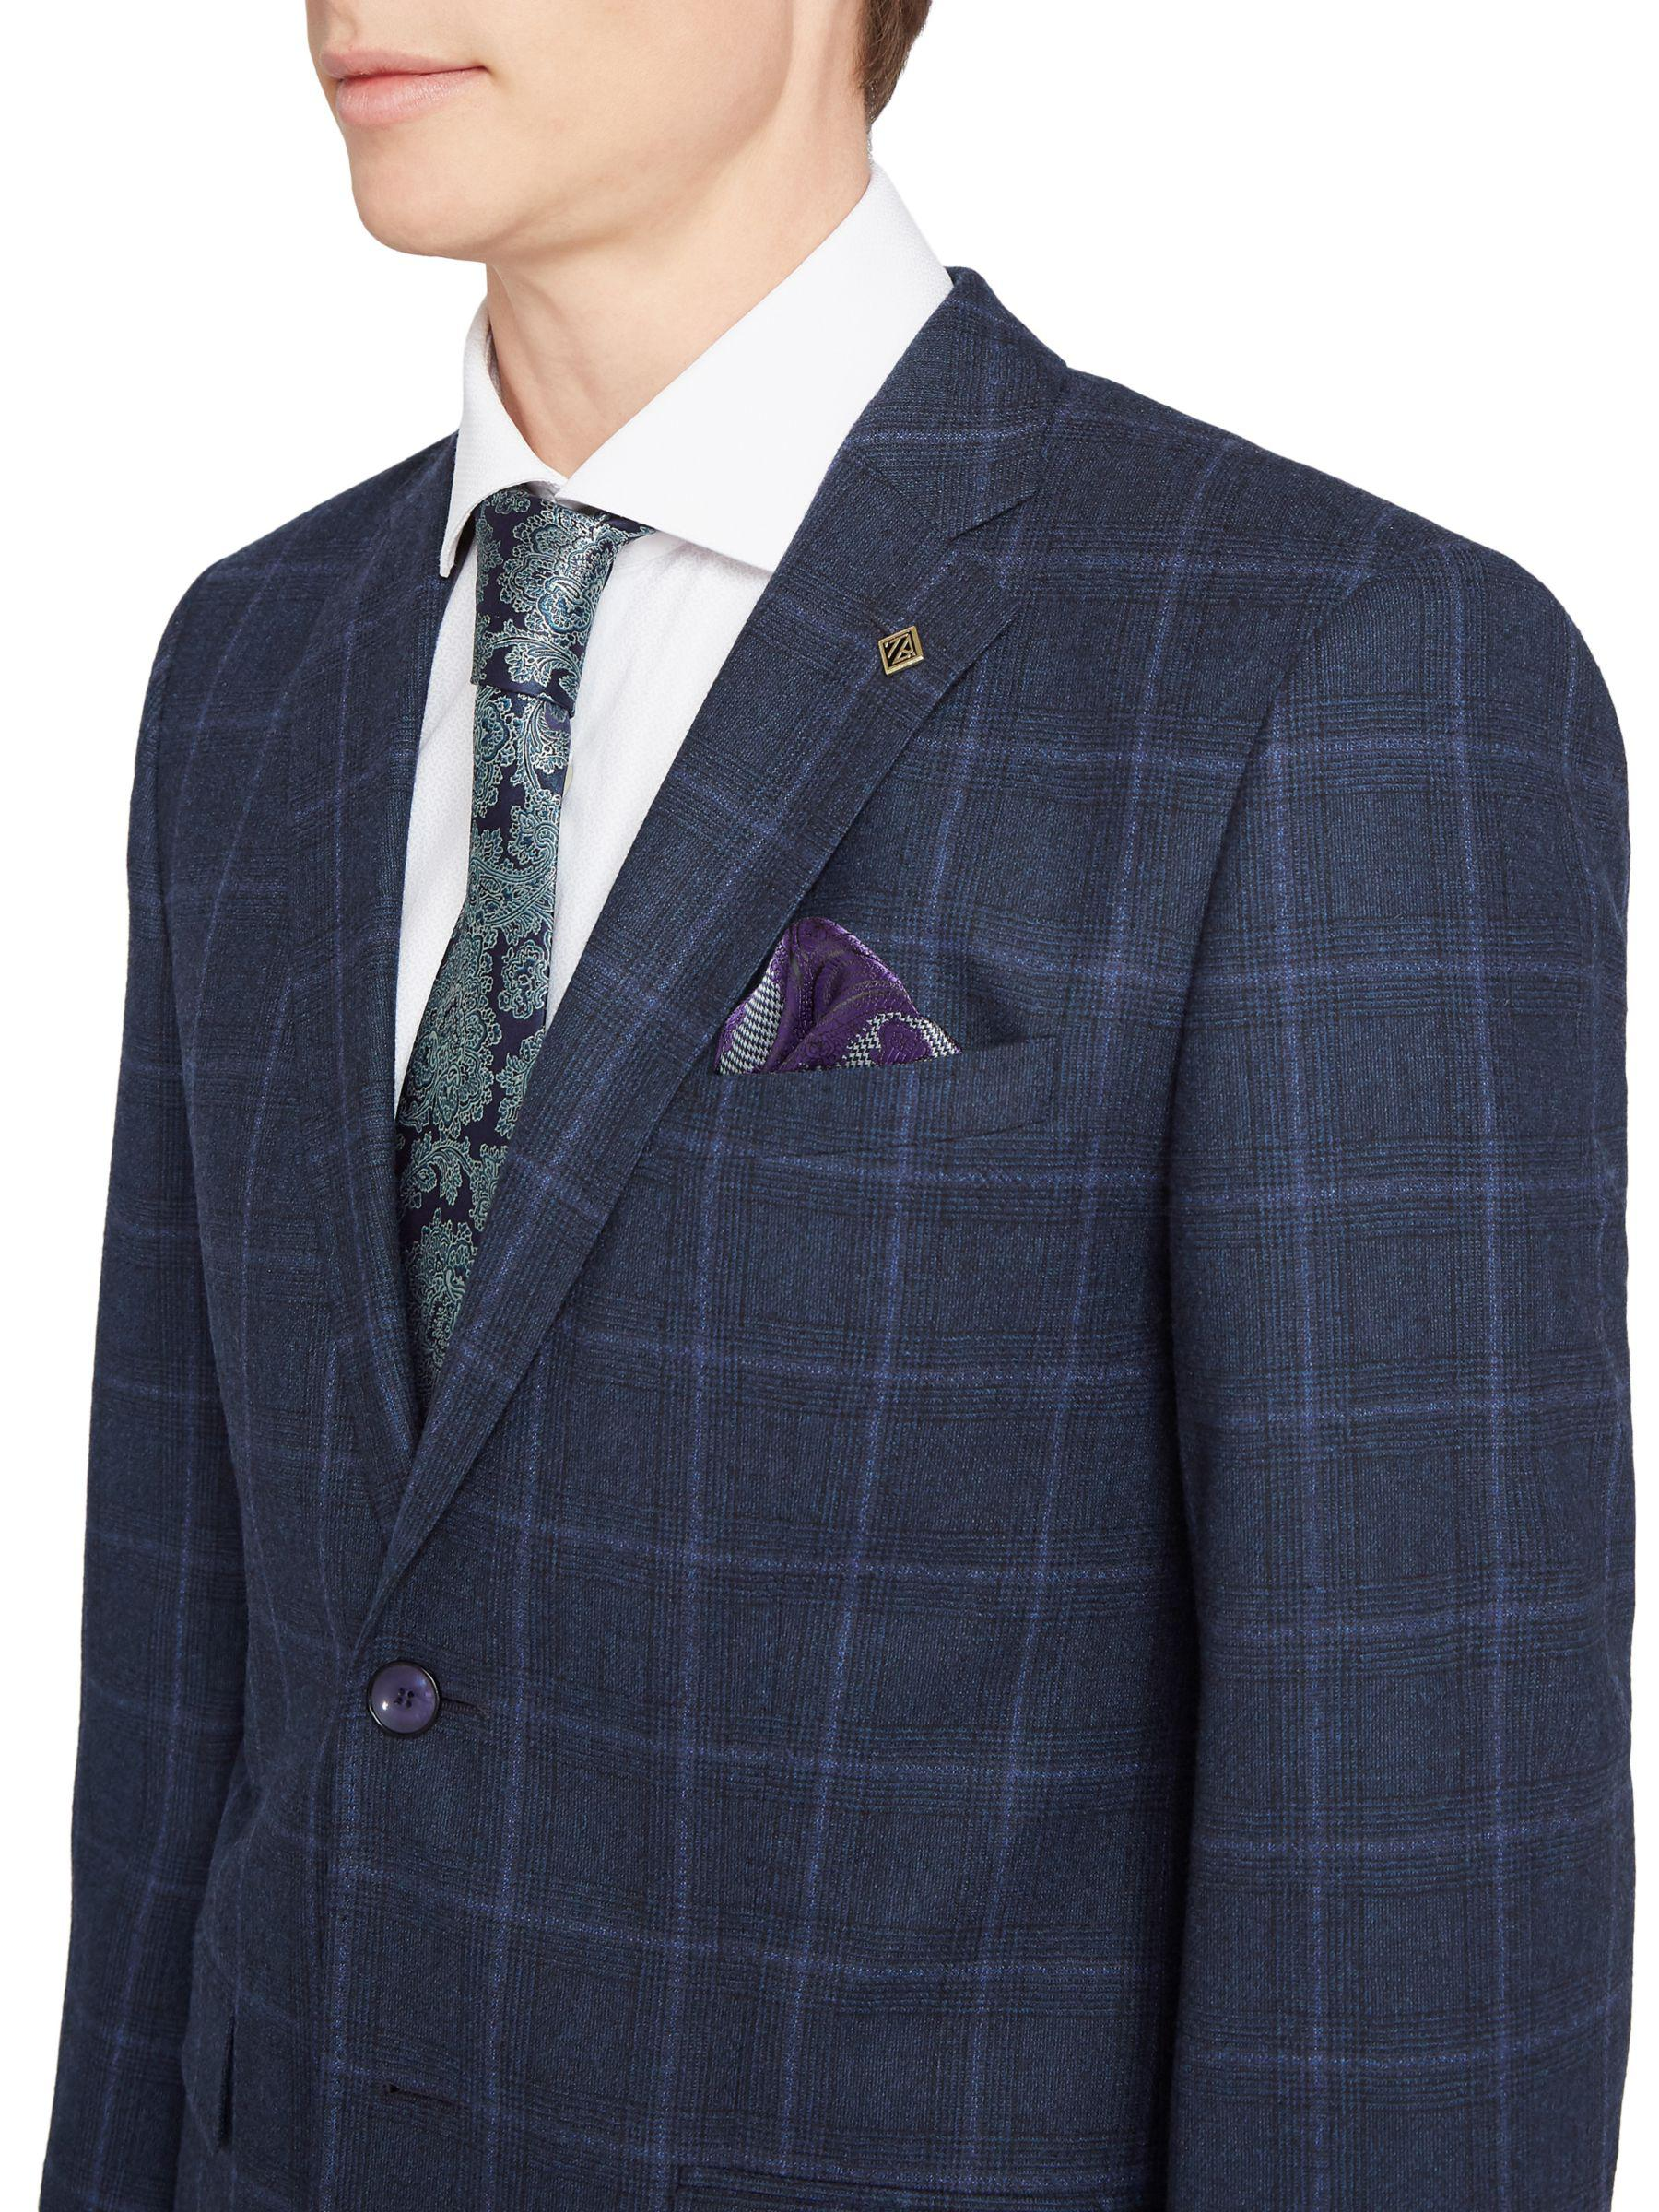 6cffe11dadcd Ted Baker Stefanj Check Tailored Suit Jacket in Blue for Men - Lyst